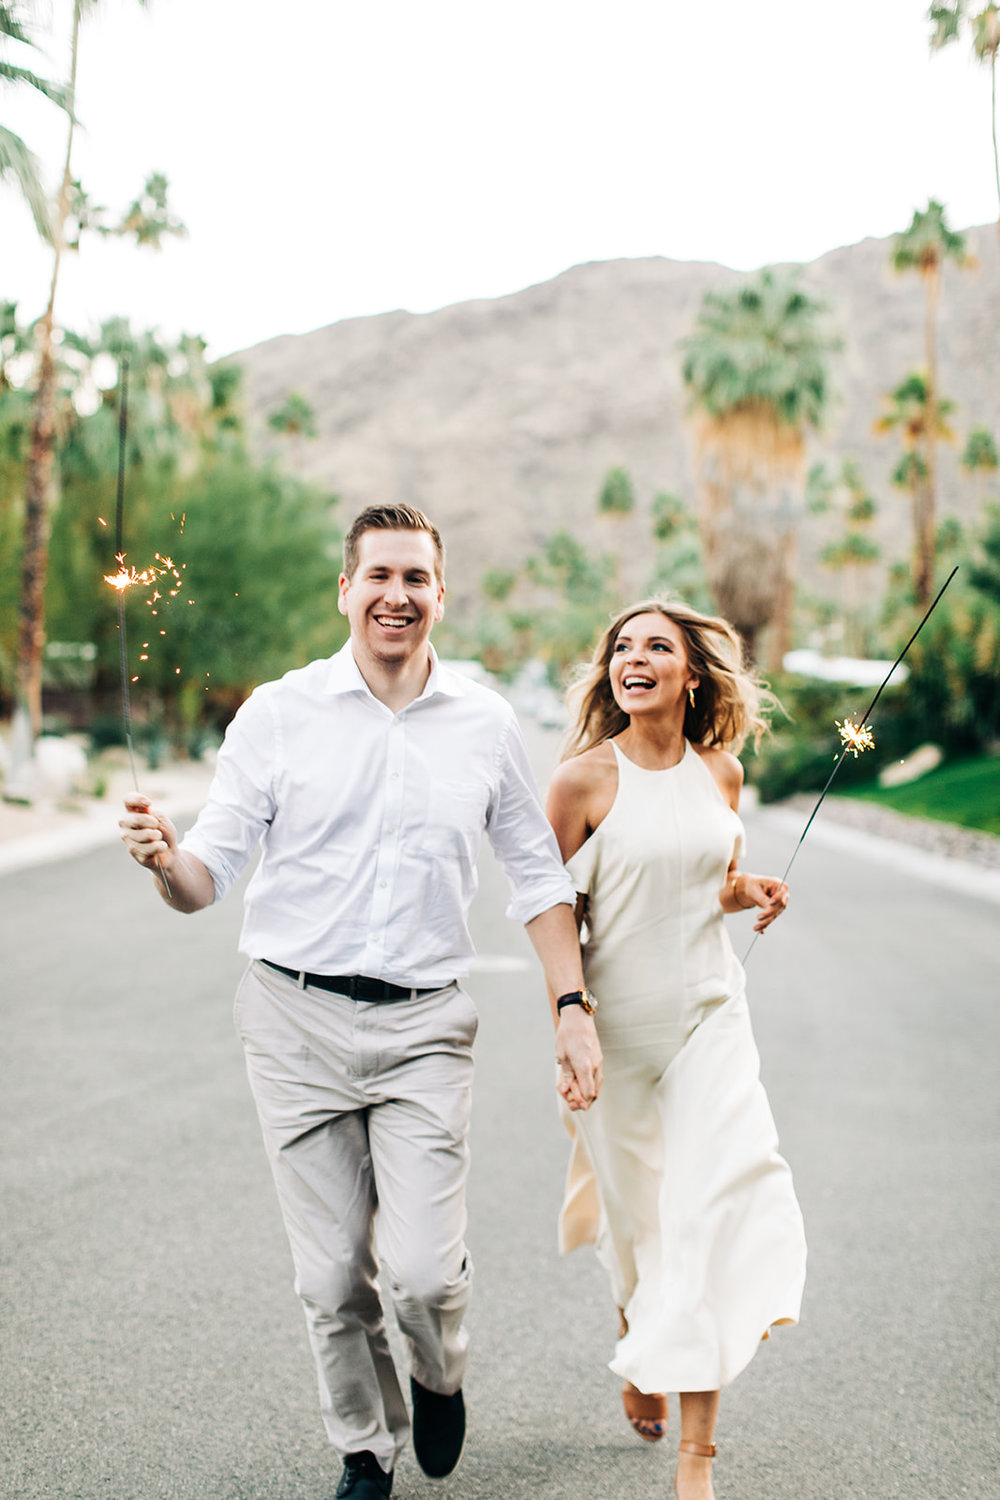 Paulina-Drew_Palm-Springs-Engagement-Photos_Clarisse-Rae_Southern-California-Wedding-Photographer-53